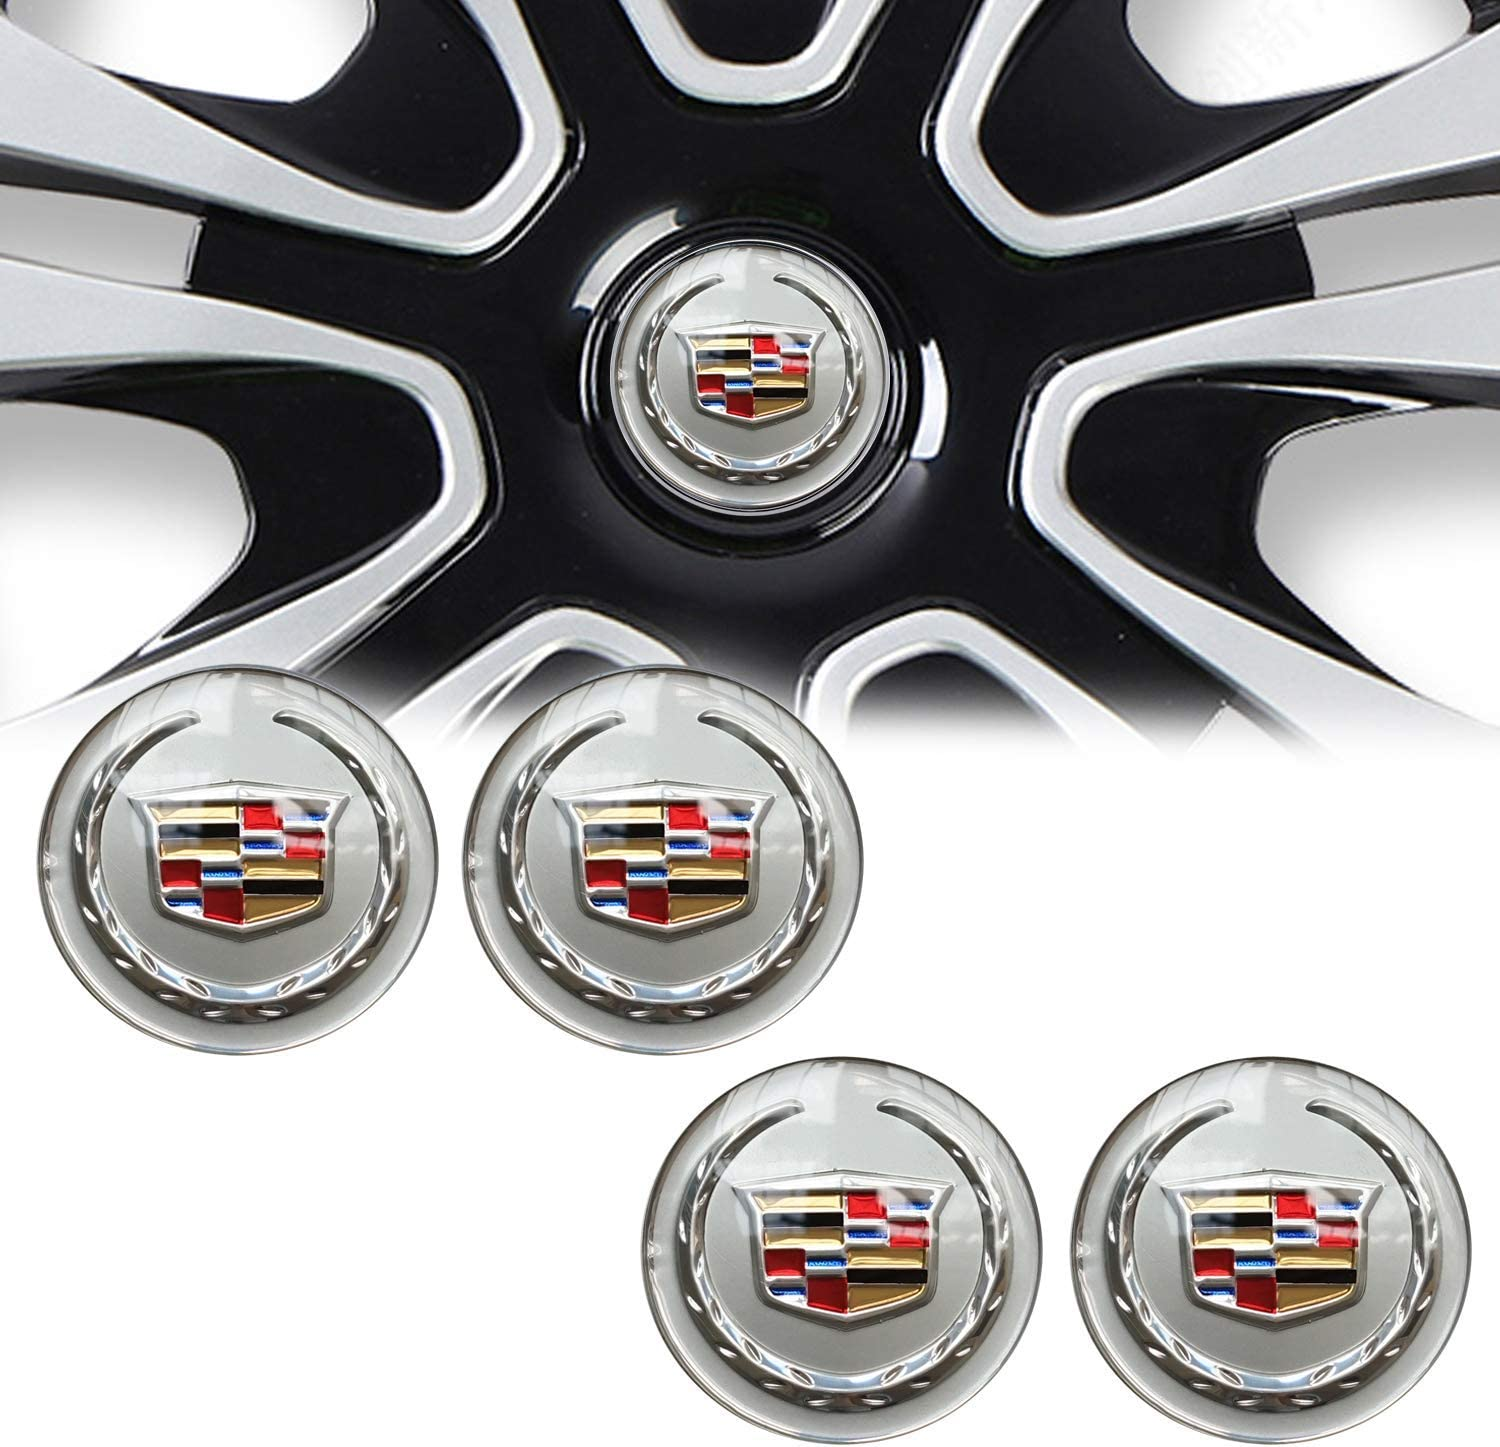 Silver 4 65mm for Cadillac Wheel Stickers Emblem Badge Wheel Hub Cap Center Cap Suitable for Cadillac ATS CTS EXT SRX XTS XLR compatible